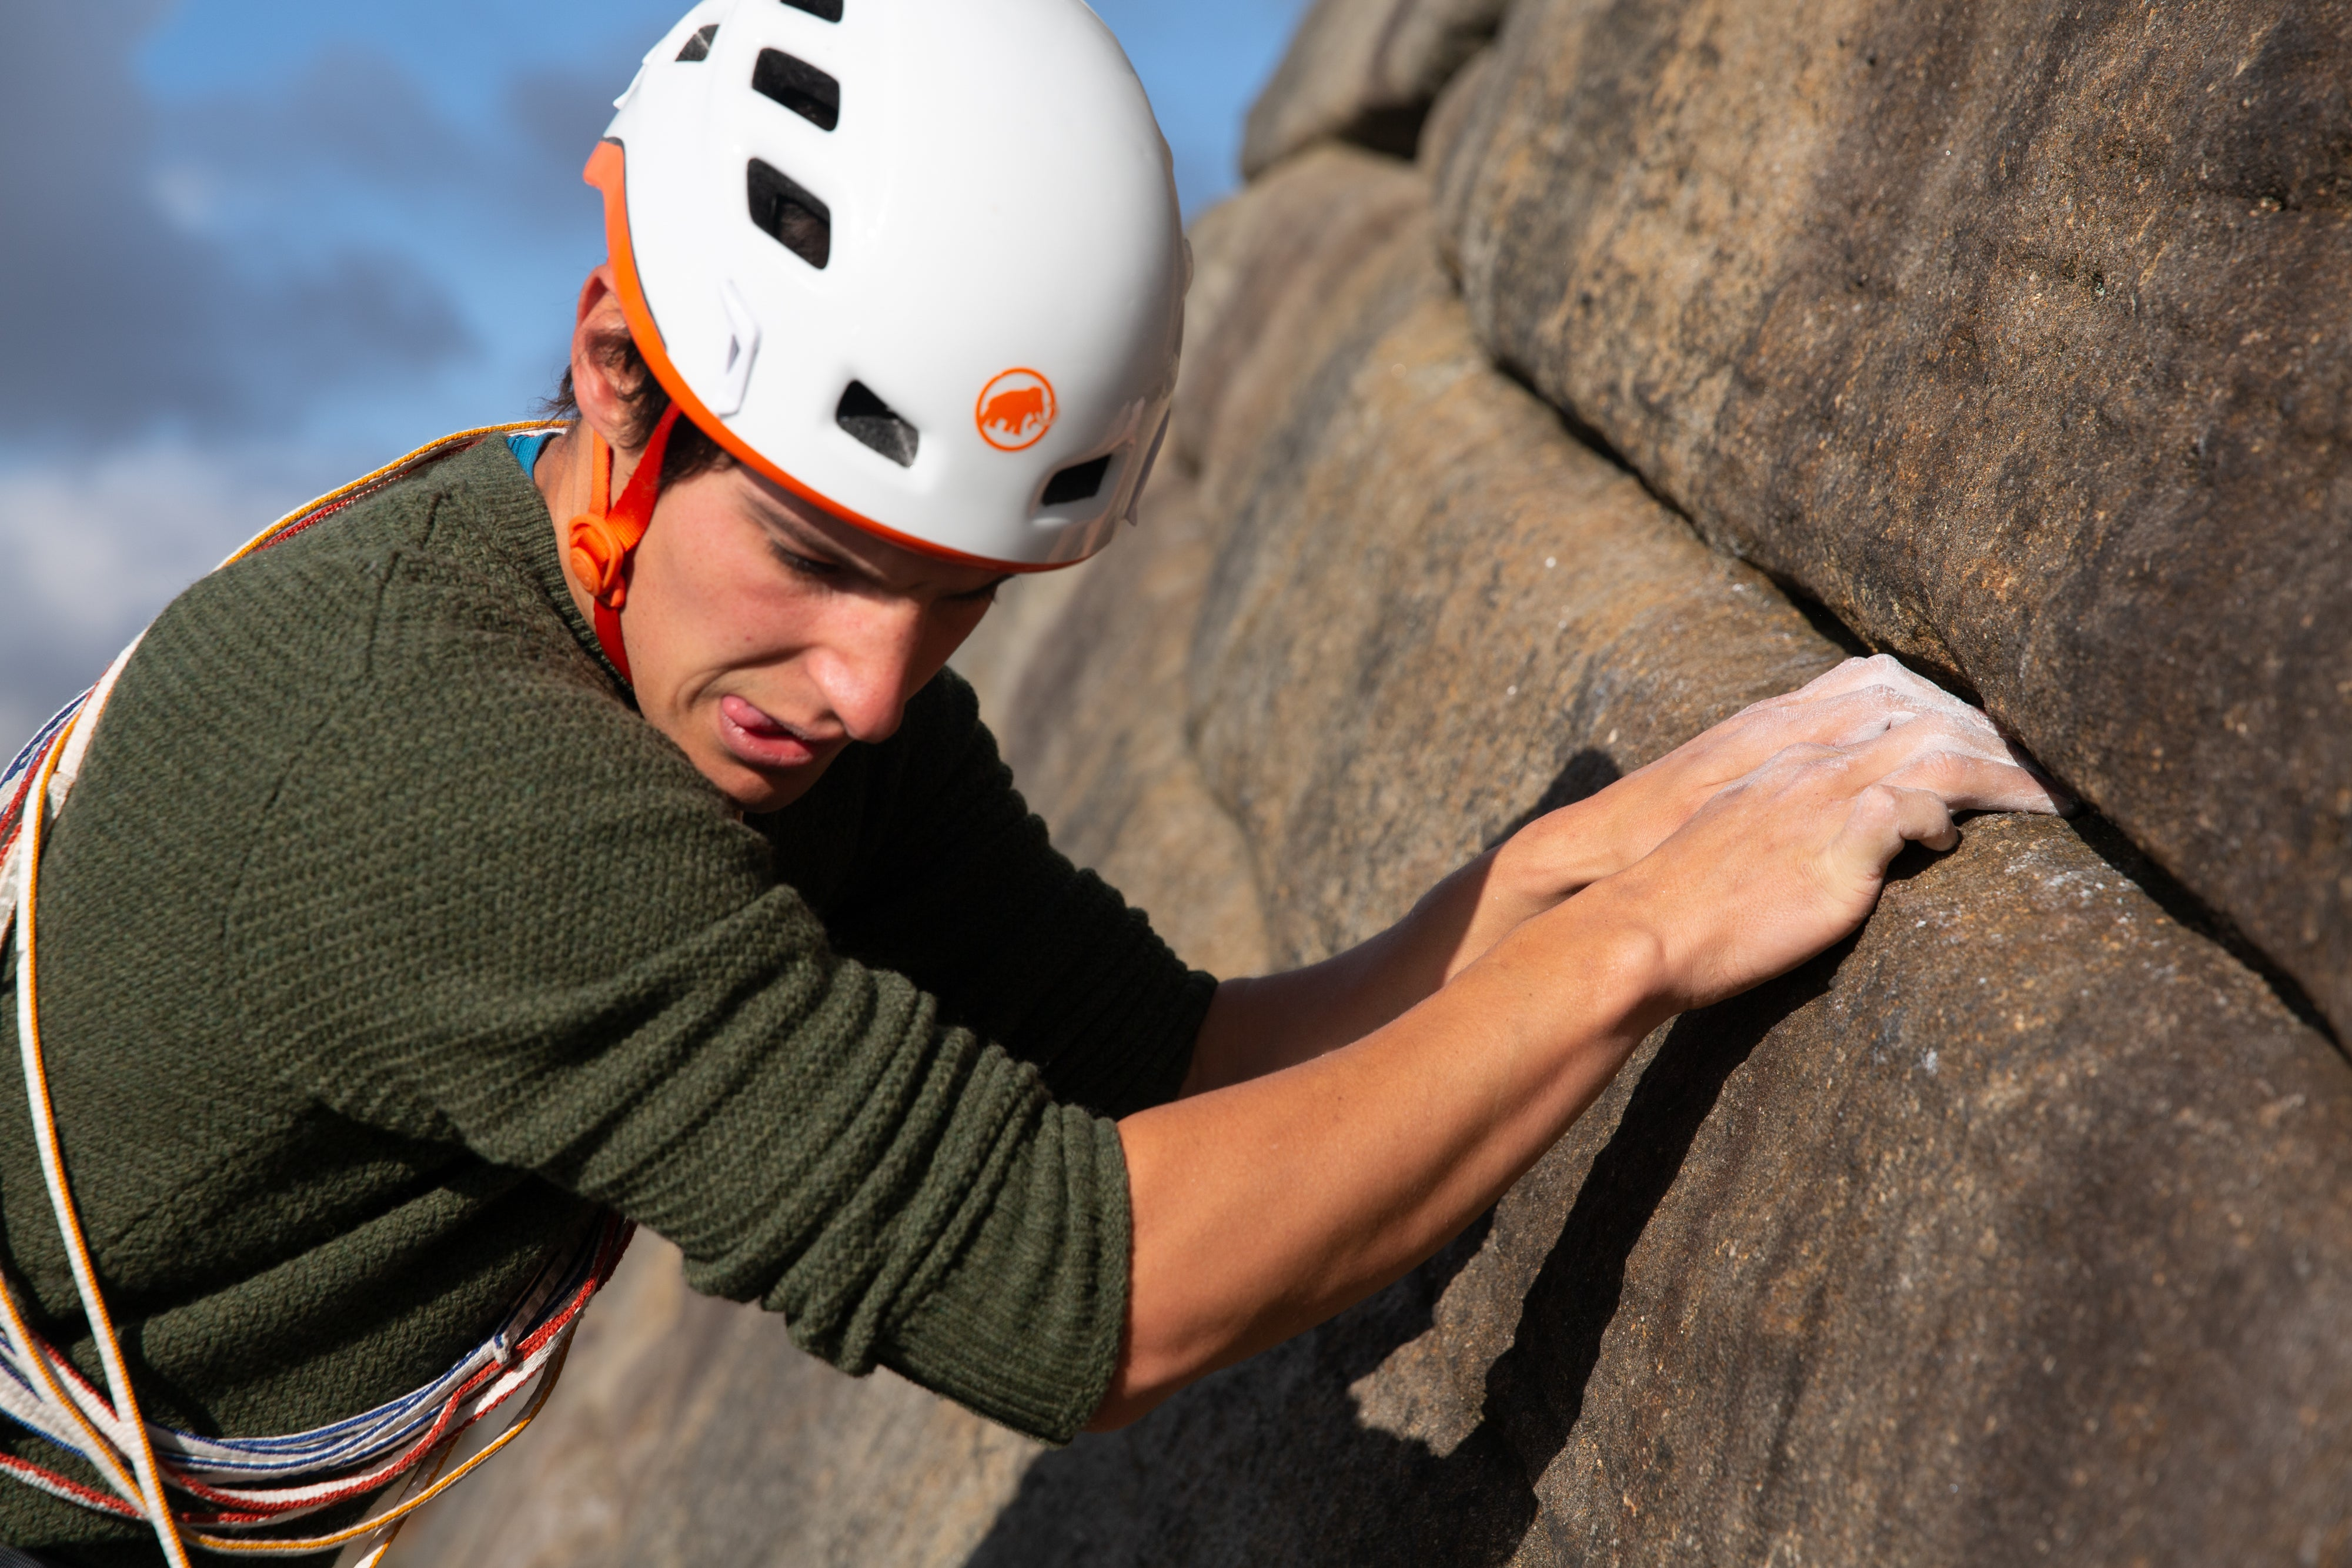 A man trad climbing on Stanage Edge in the Peak District